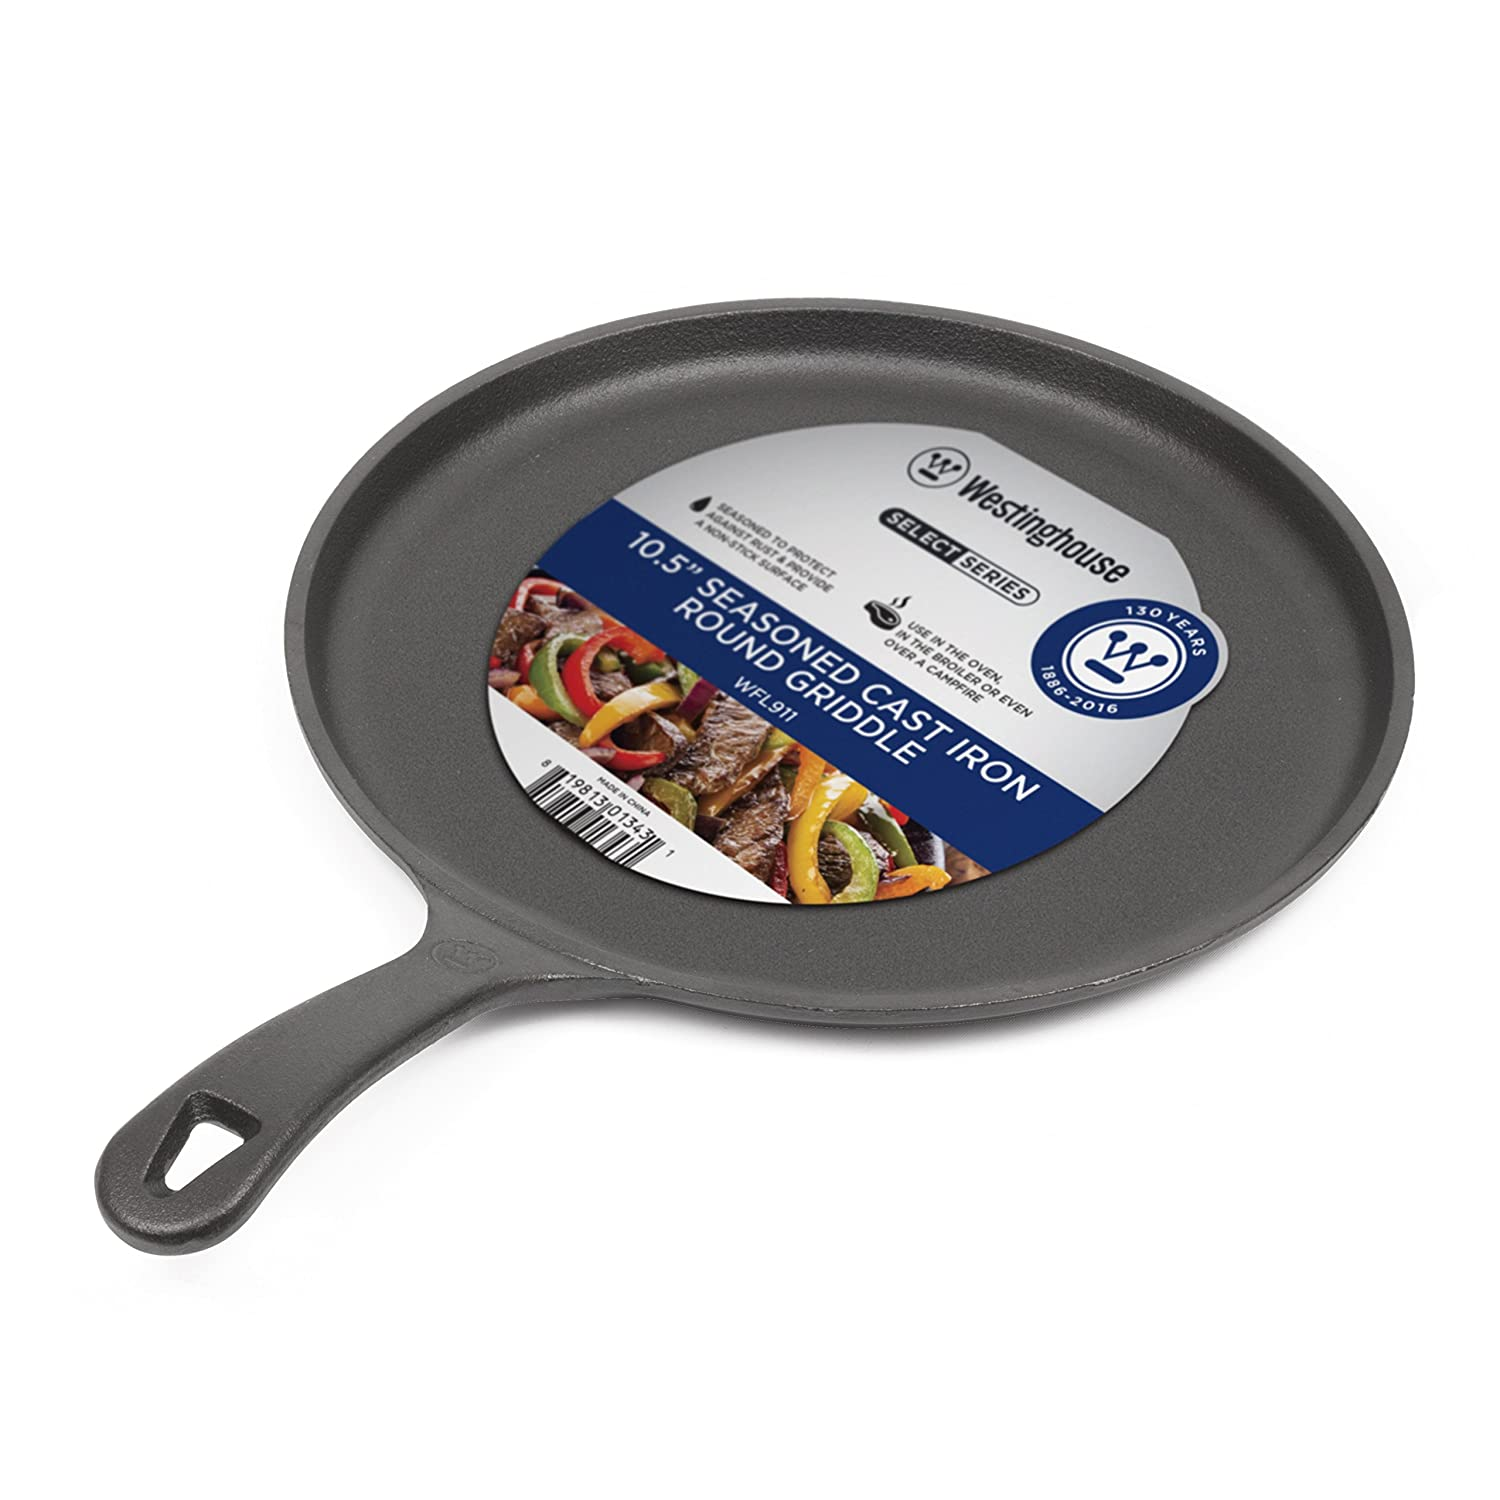 Westinghouse WFL911 Select Series Seasoned Cast Iron 10 1/2 Inch Round Griddle Westinghouse Select